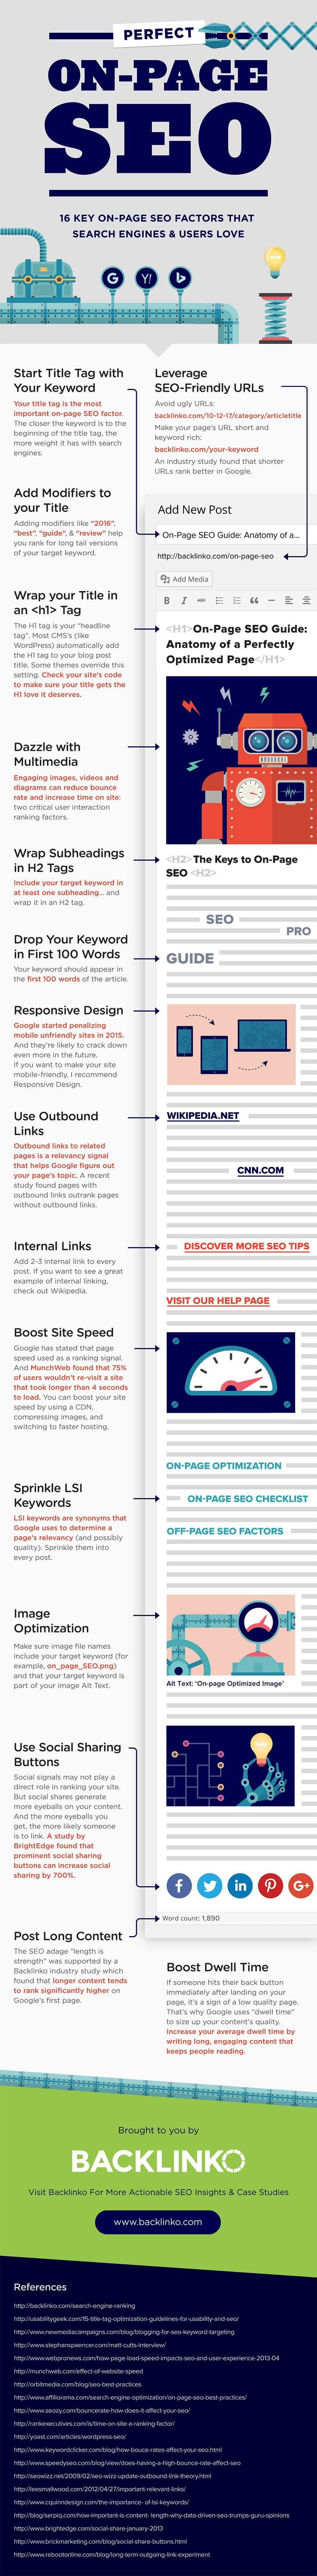 The Anatomy of a Perfectly Optimized Web Page: A 16 Step On-Page SEO ...